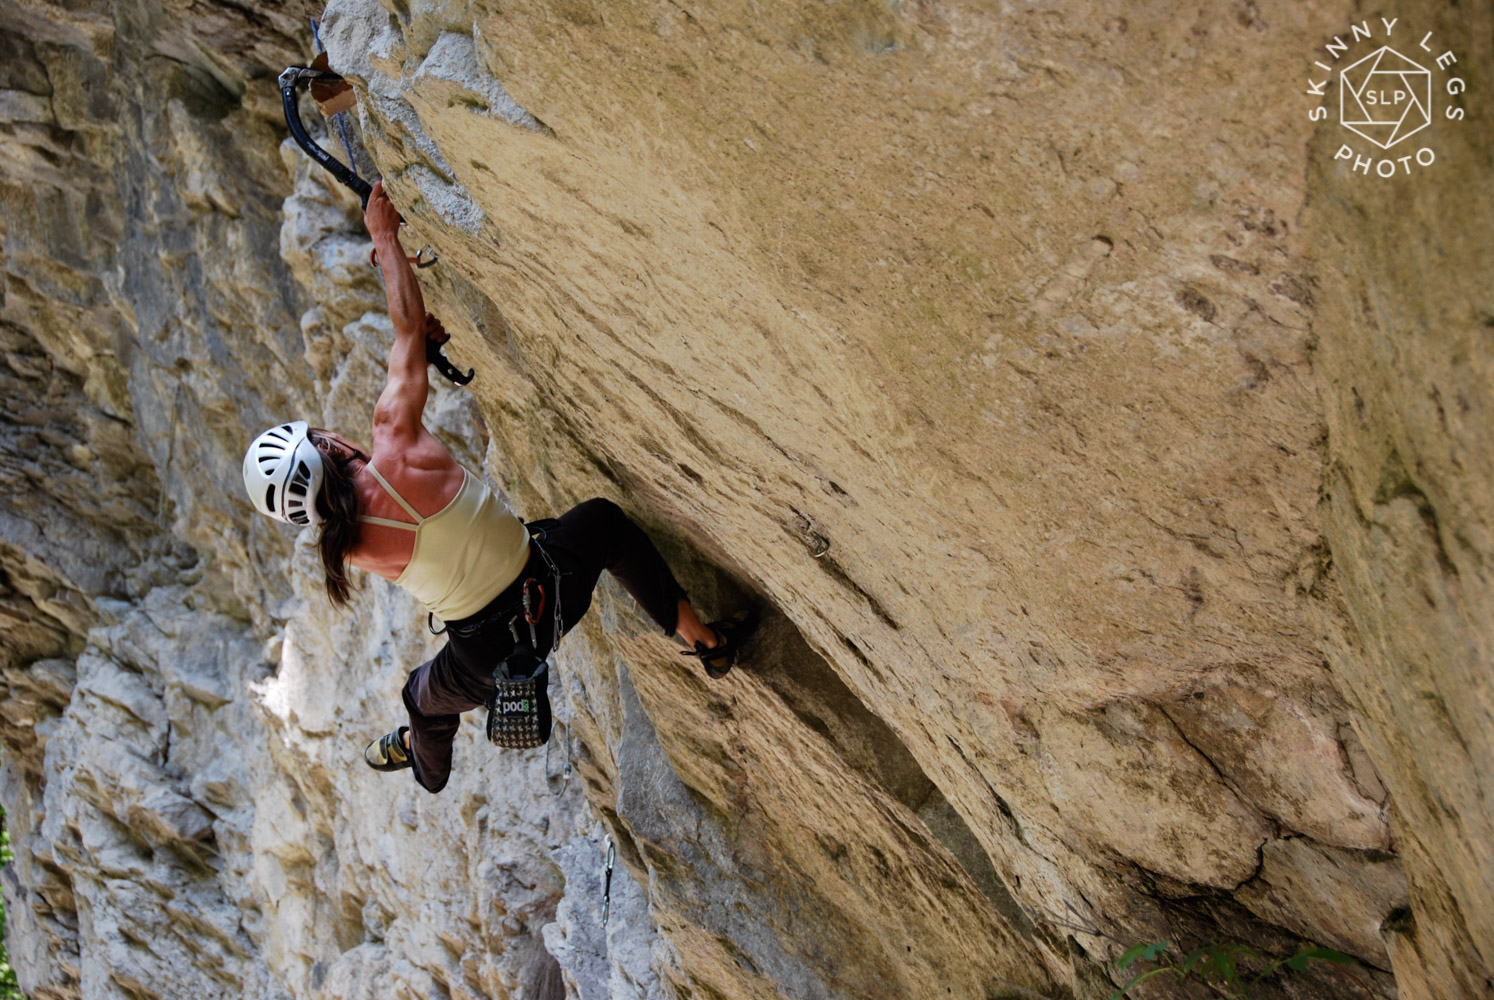 This is how we drytool - Isabelle Santoire cranking up one of the 'easier' routes at the venue.